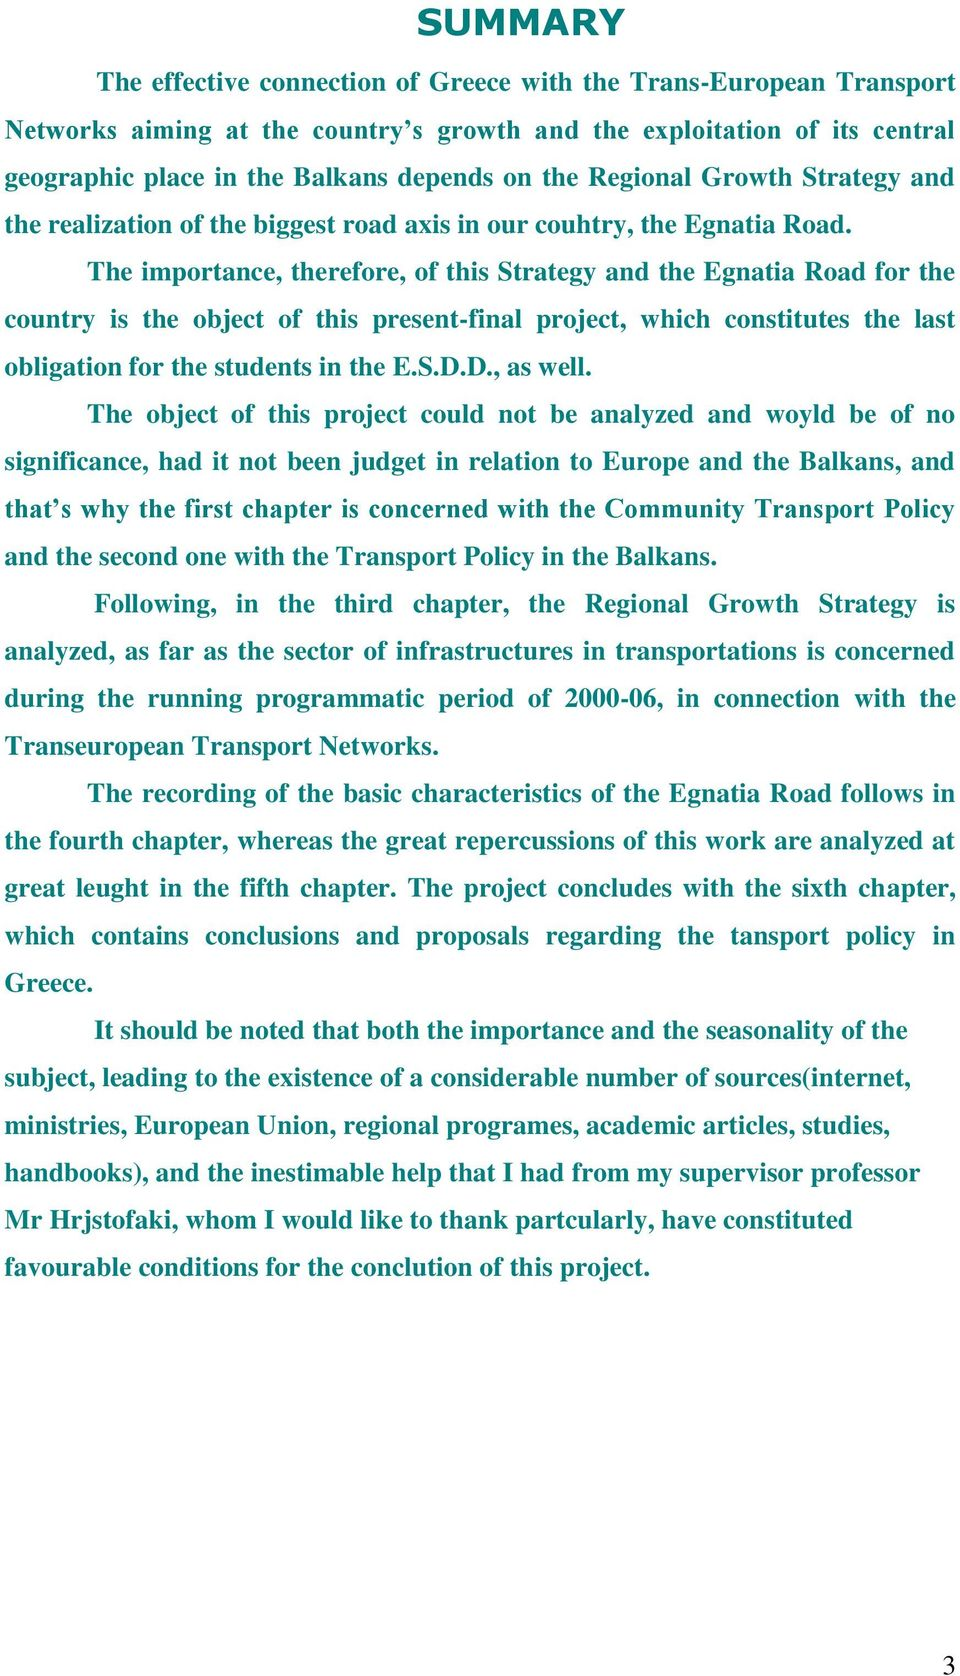 The importance, therefore, of this Strategy and the Egnatia Road for the country is the object of this present-final project, which constitutes the last obligation for the students in the E.S.D.